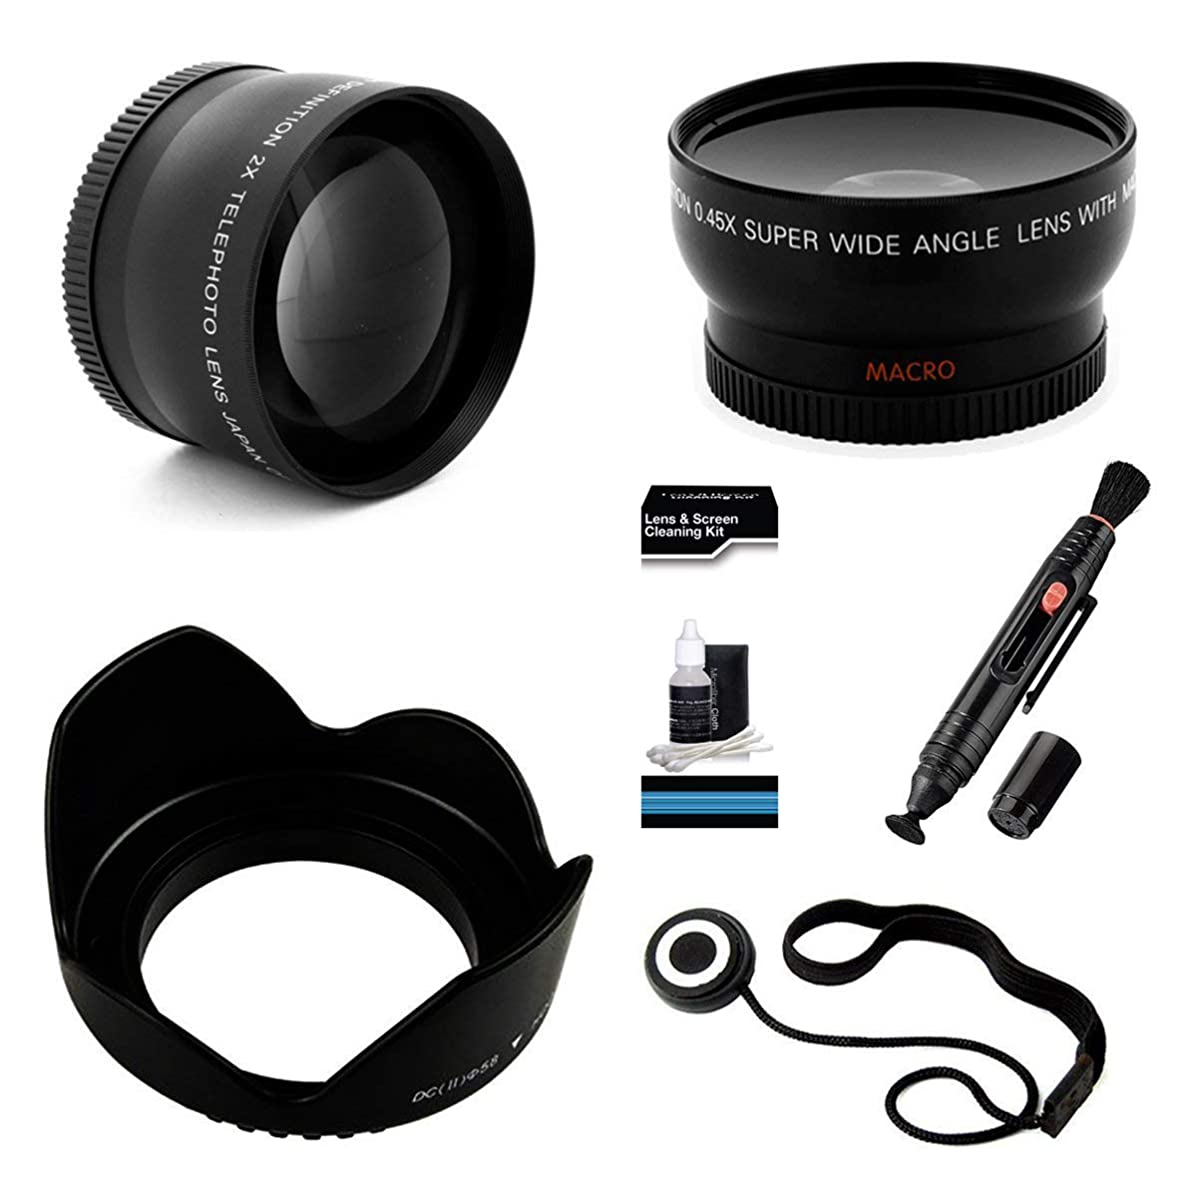 37mm Essential Lens Kit for Select JVC Everio Camcorders. Bundle Includes 2x Telephoto Lens, 0.45x HD Wide Angle Lens w/Macro, Flower Tulip Lens Hood & UltraPro Accessory Set